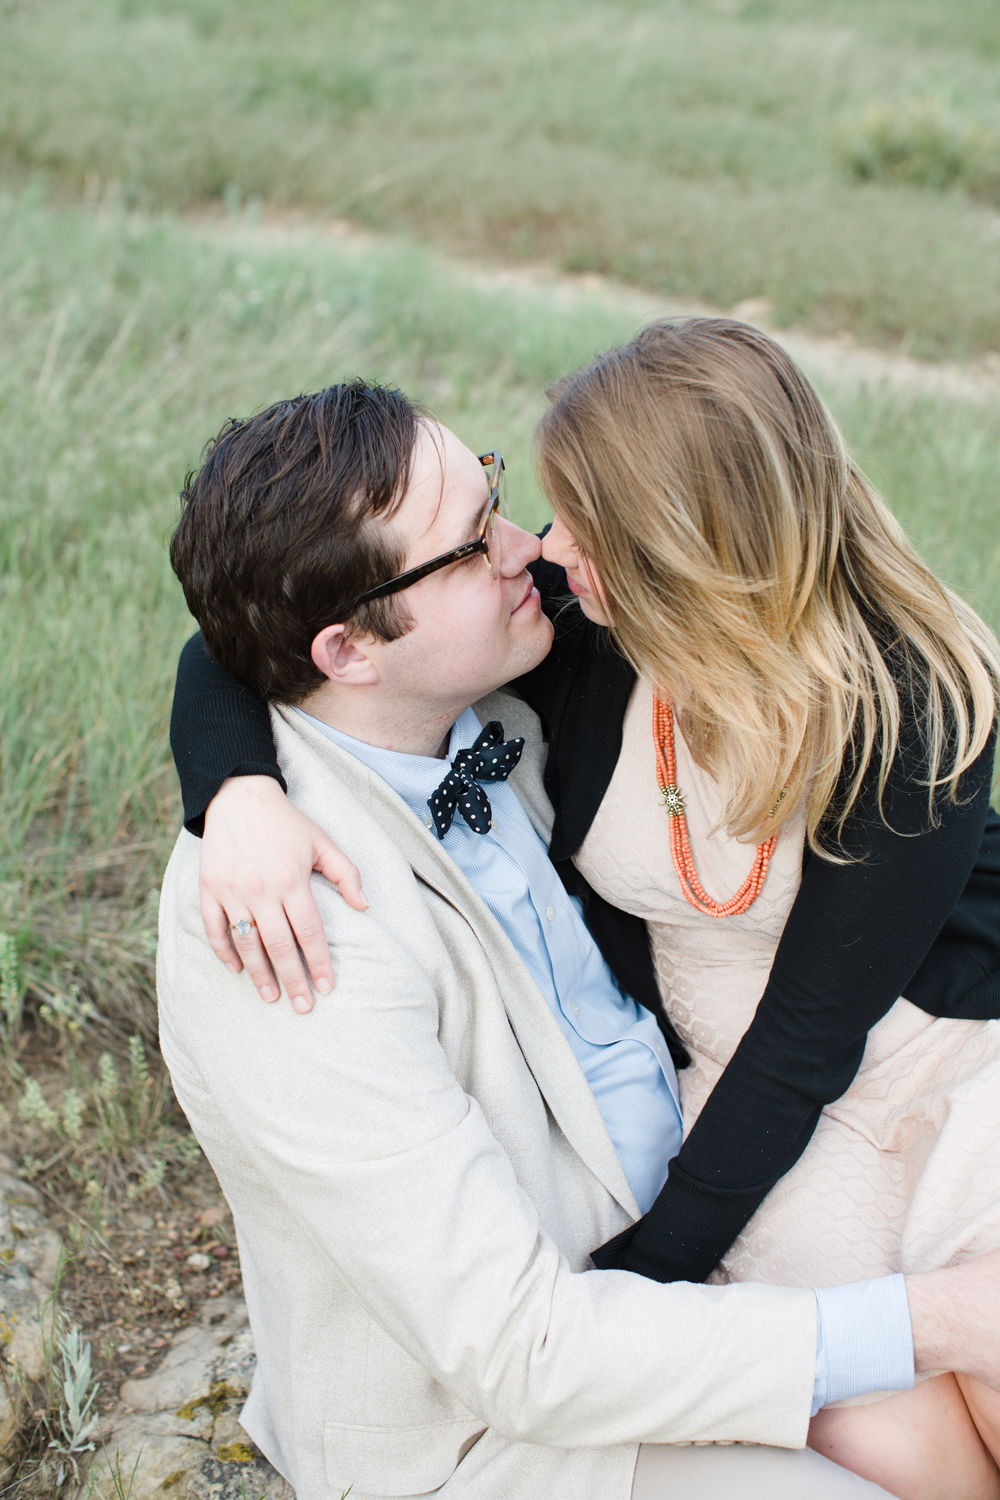 MatthewsPark_Colorado_Engagement_RobinCainPhotography_06.jpg